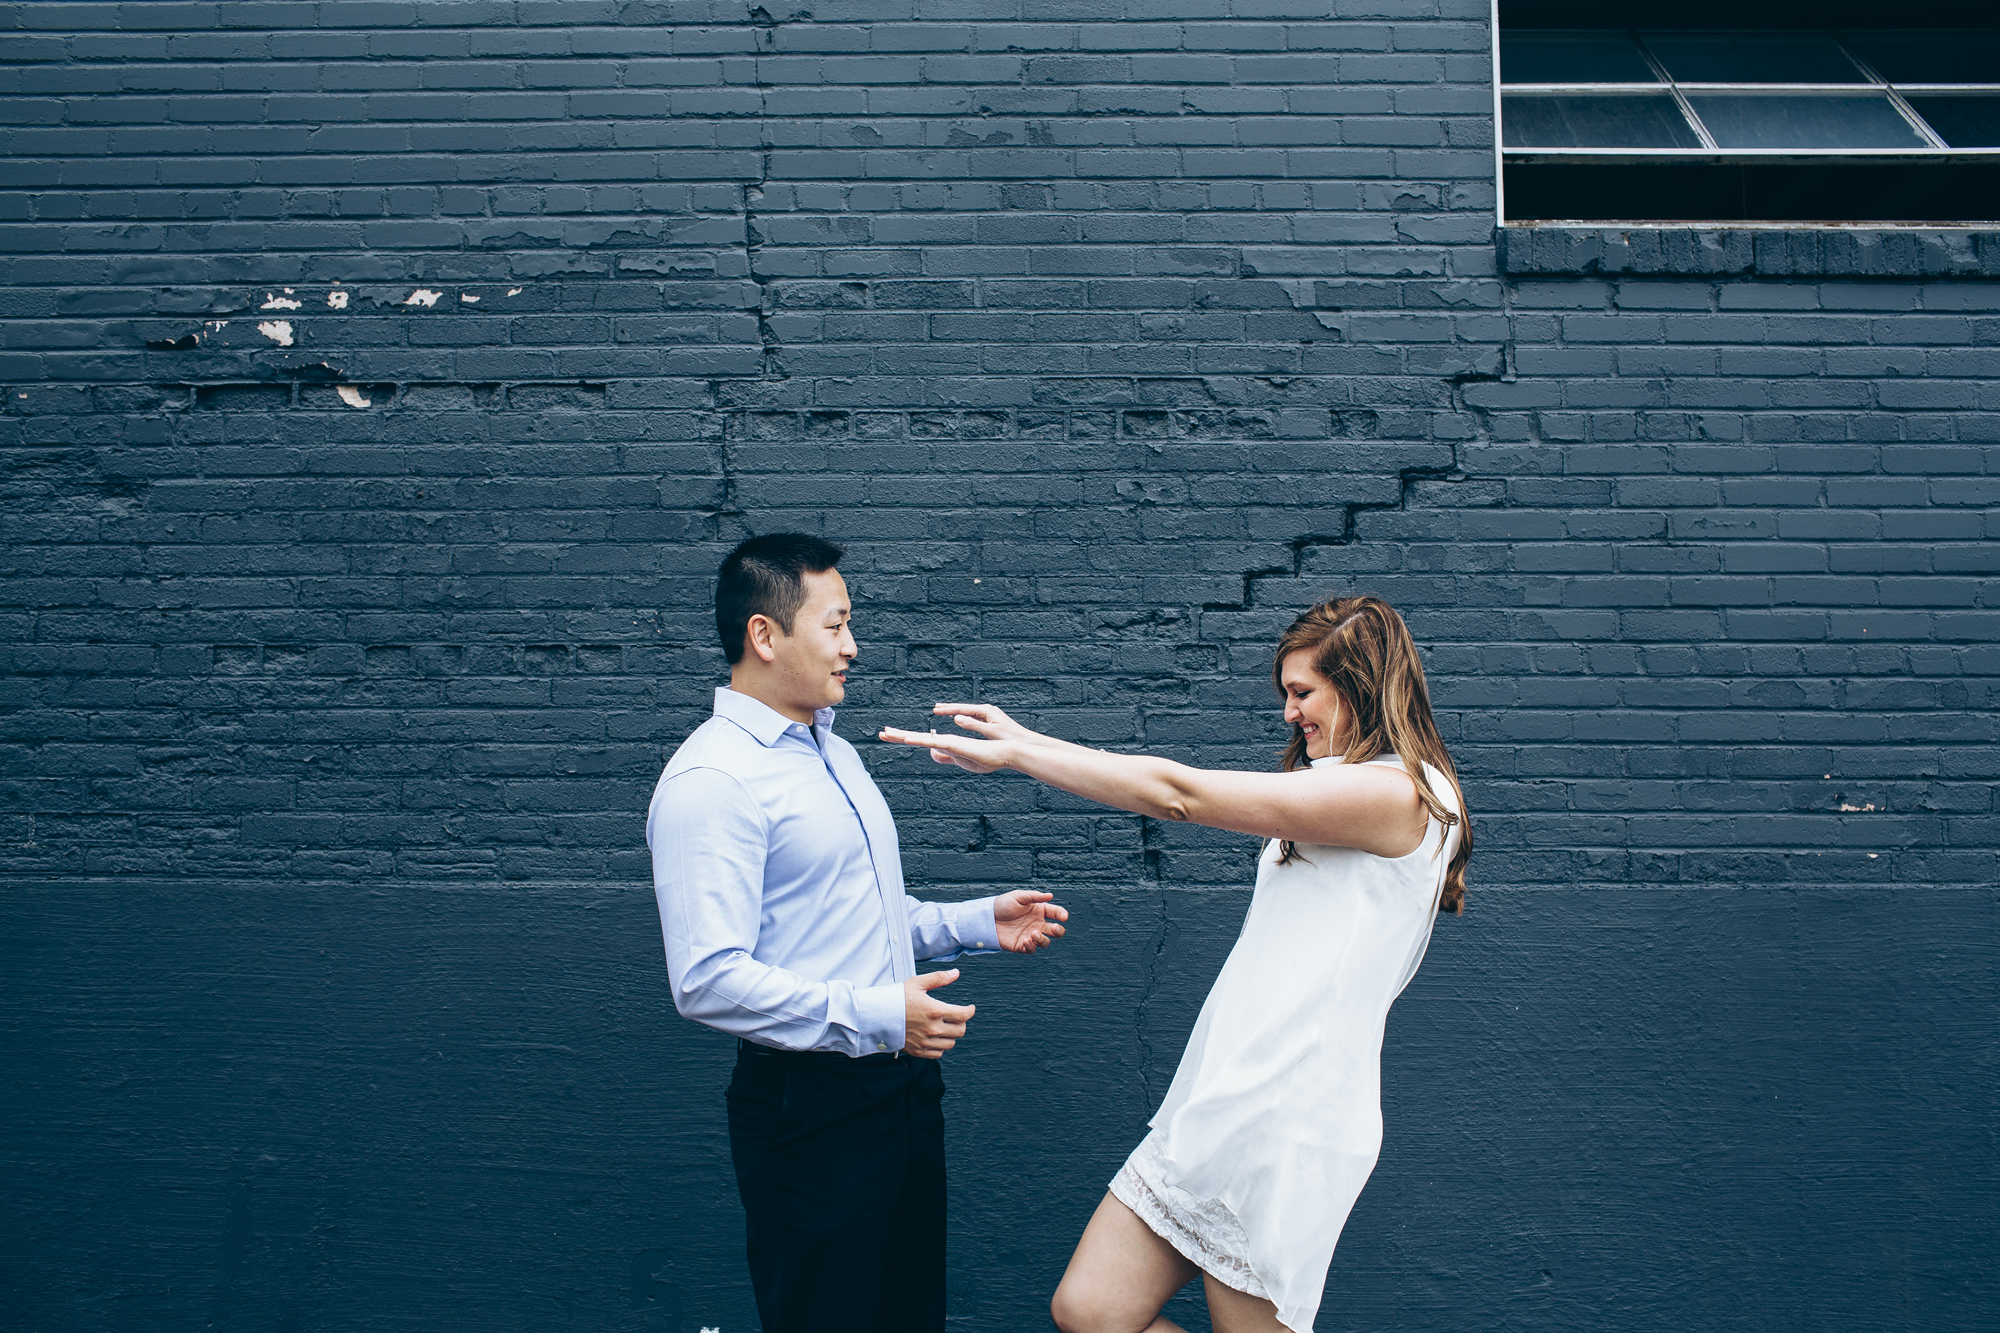 Northeast Minneapolis Engagement Session | Photography by Jess Ekstrand | Rivets & Roses